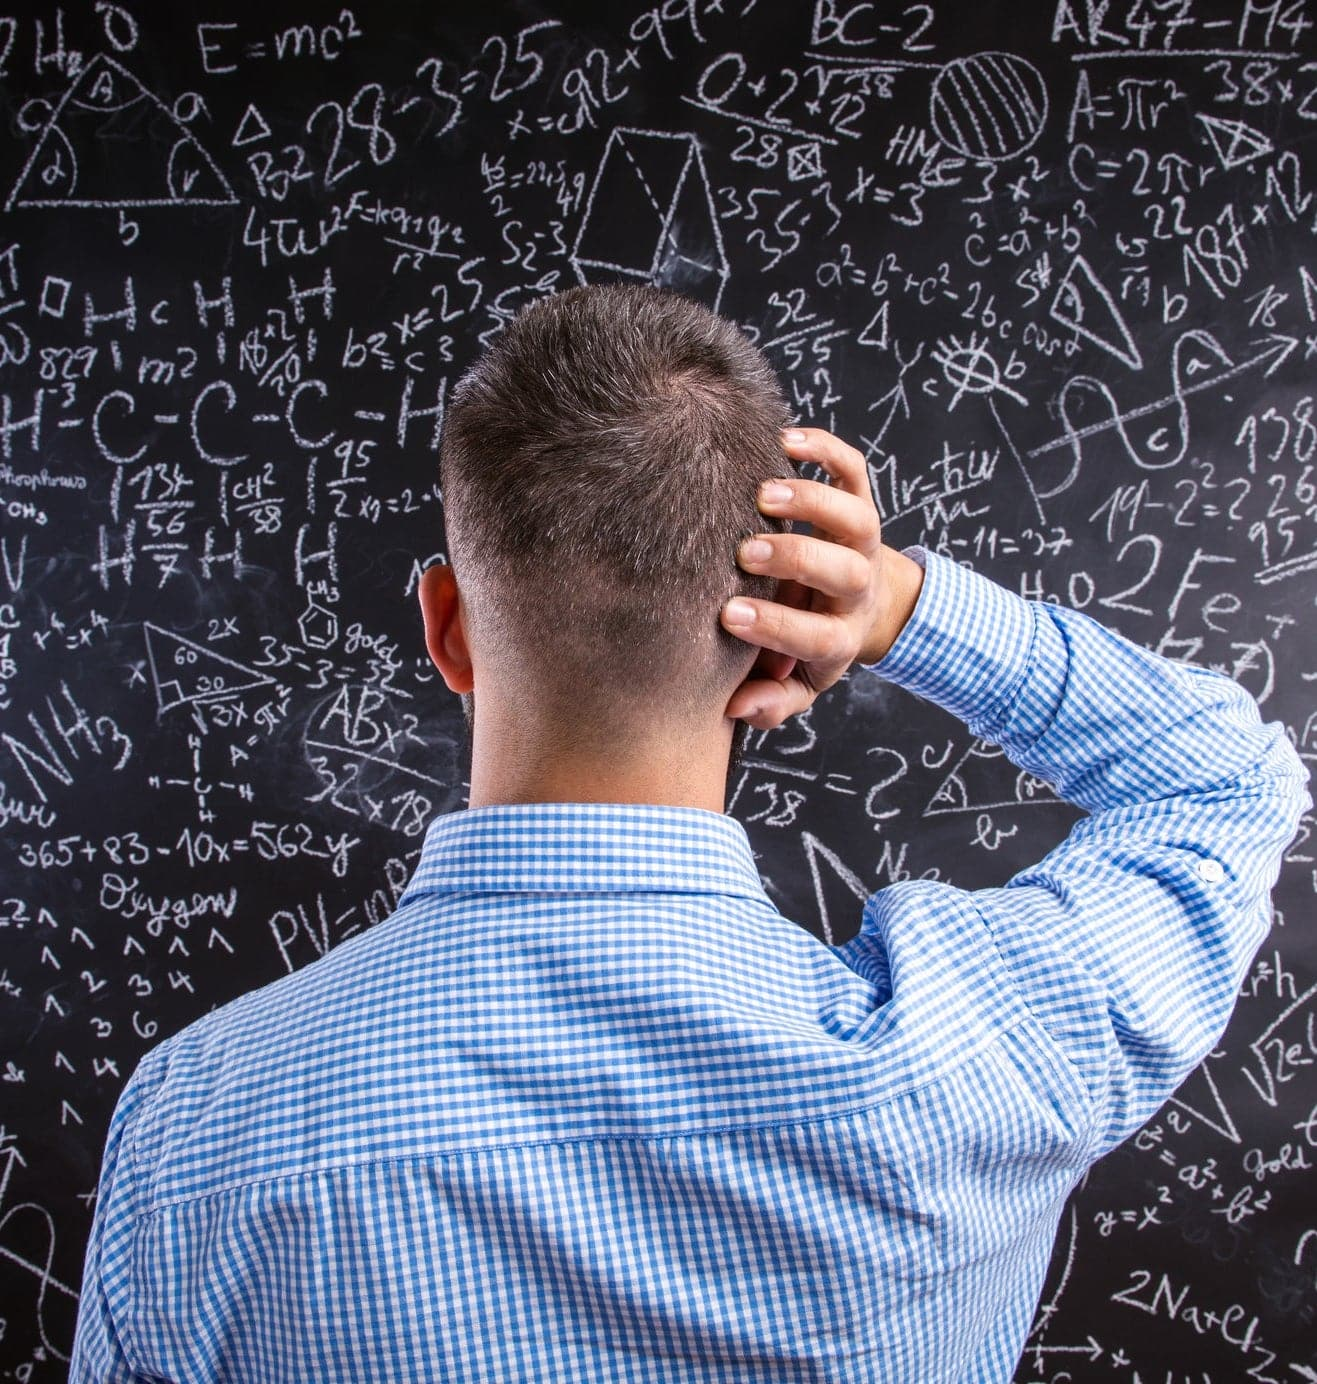 confused man staring at blackboard with complicated equations formulas math Sony Releases 40th Anniversary Retro Walkman That Can't Actually Play Cassettes